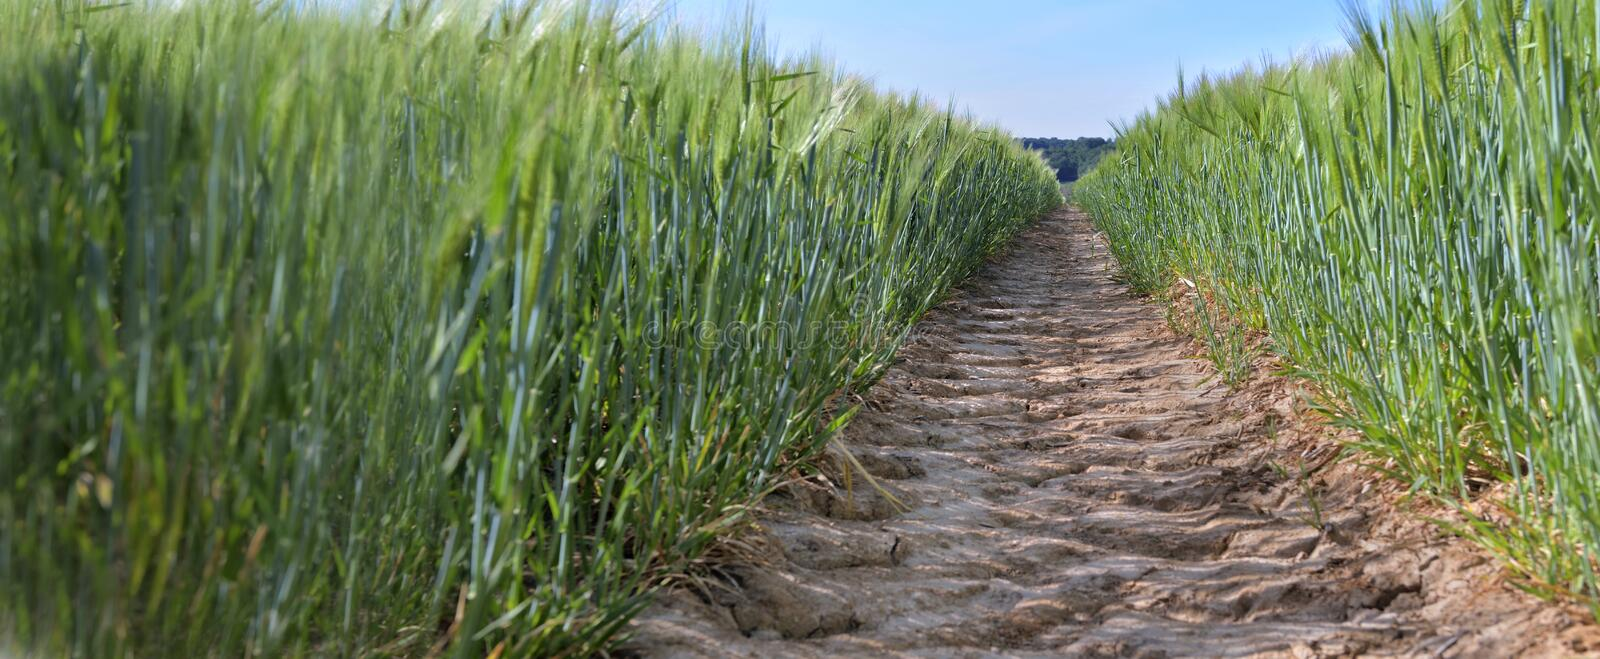 dirt path crossing a wheat growing in a field royalty free stock photo